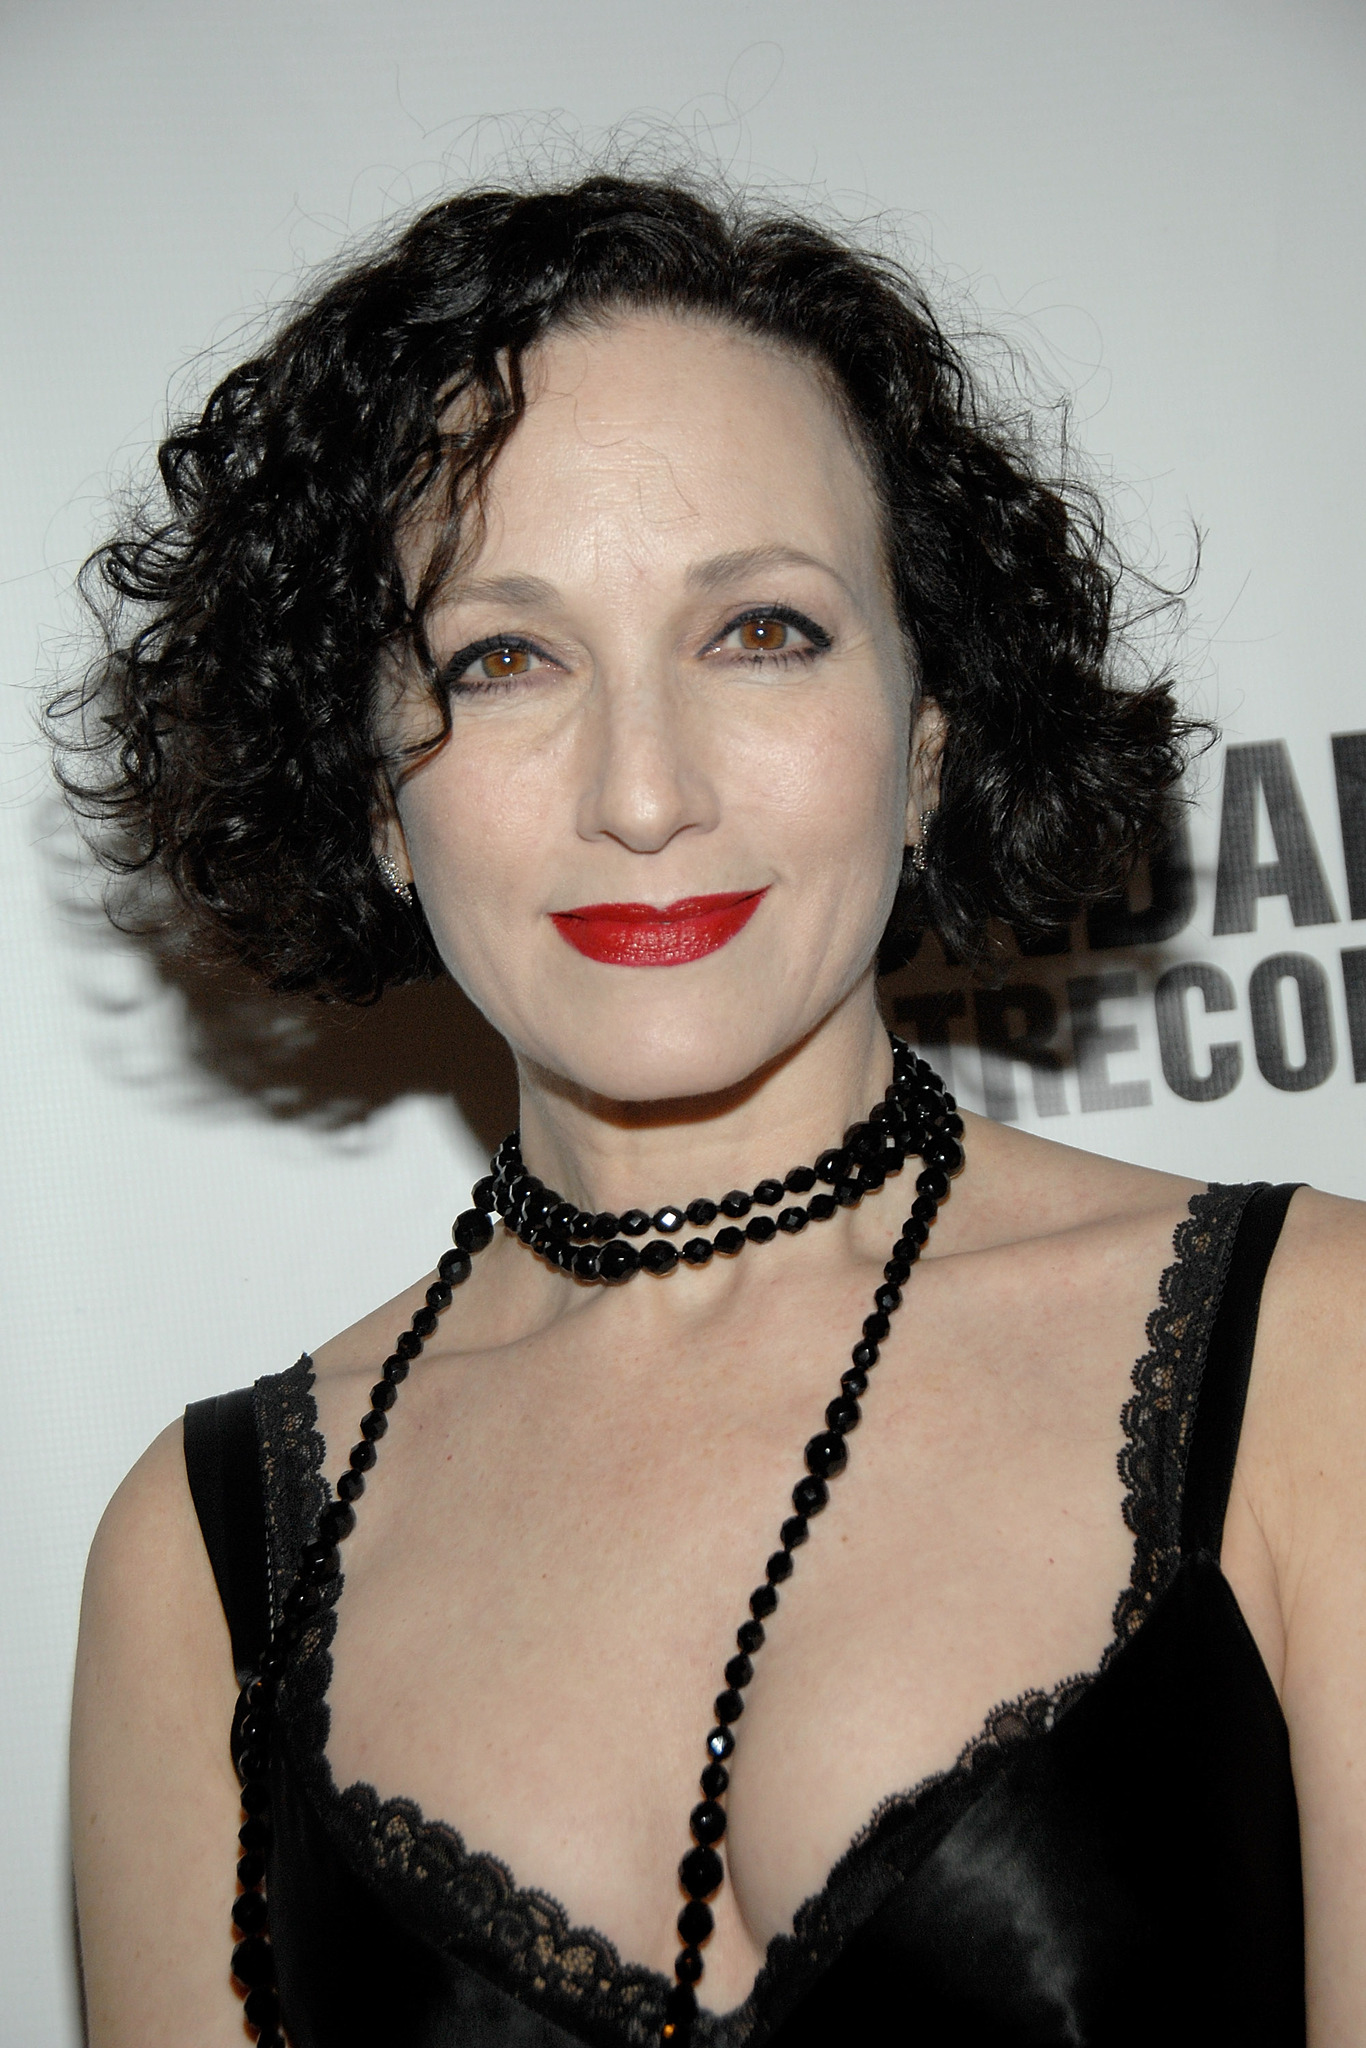 Watch Bebe Neuwirth born December 31, 1958 (age 59) video